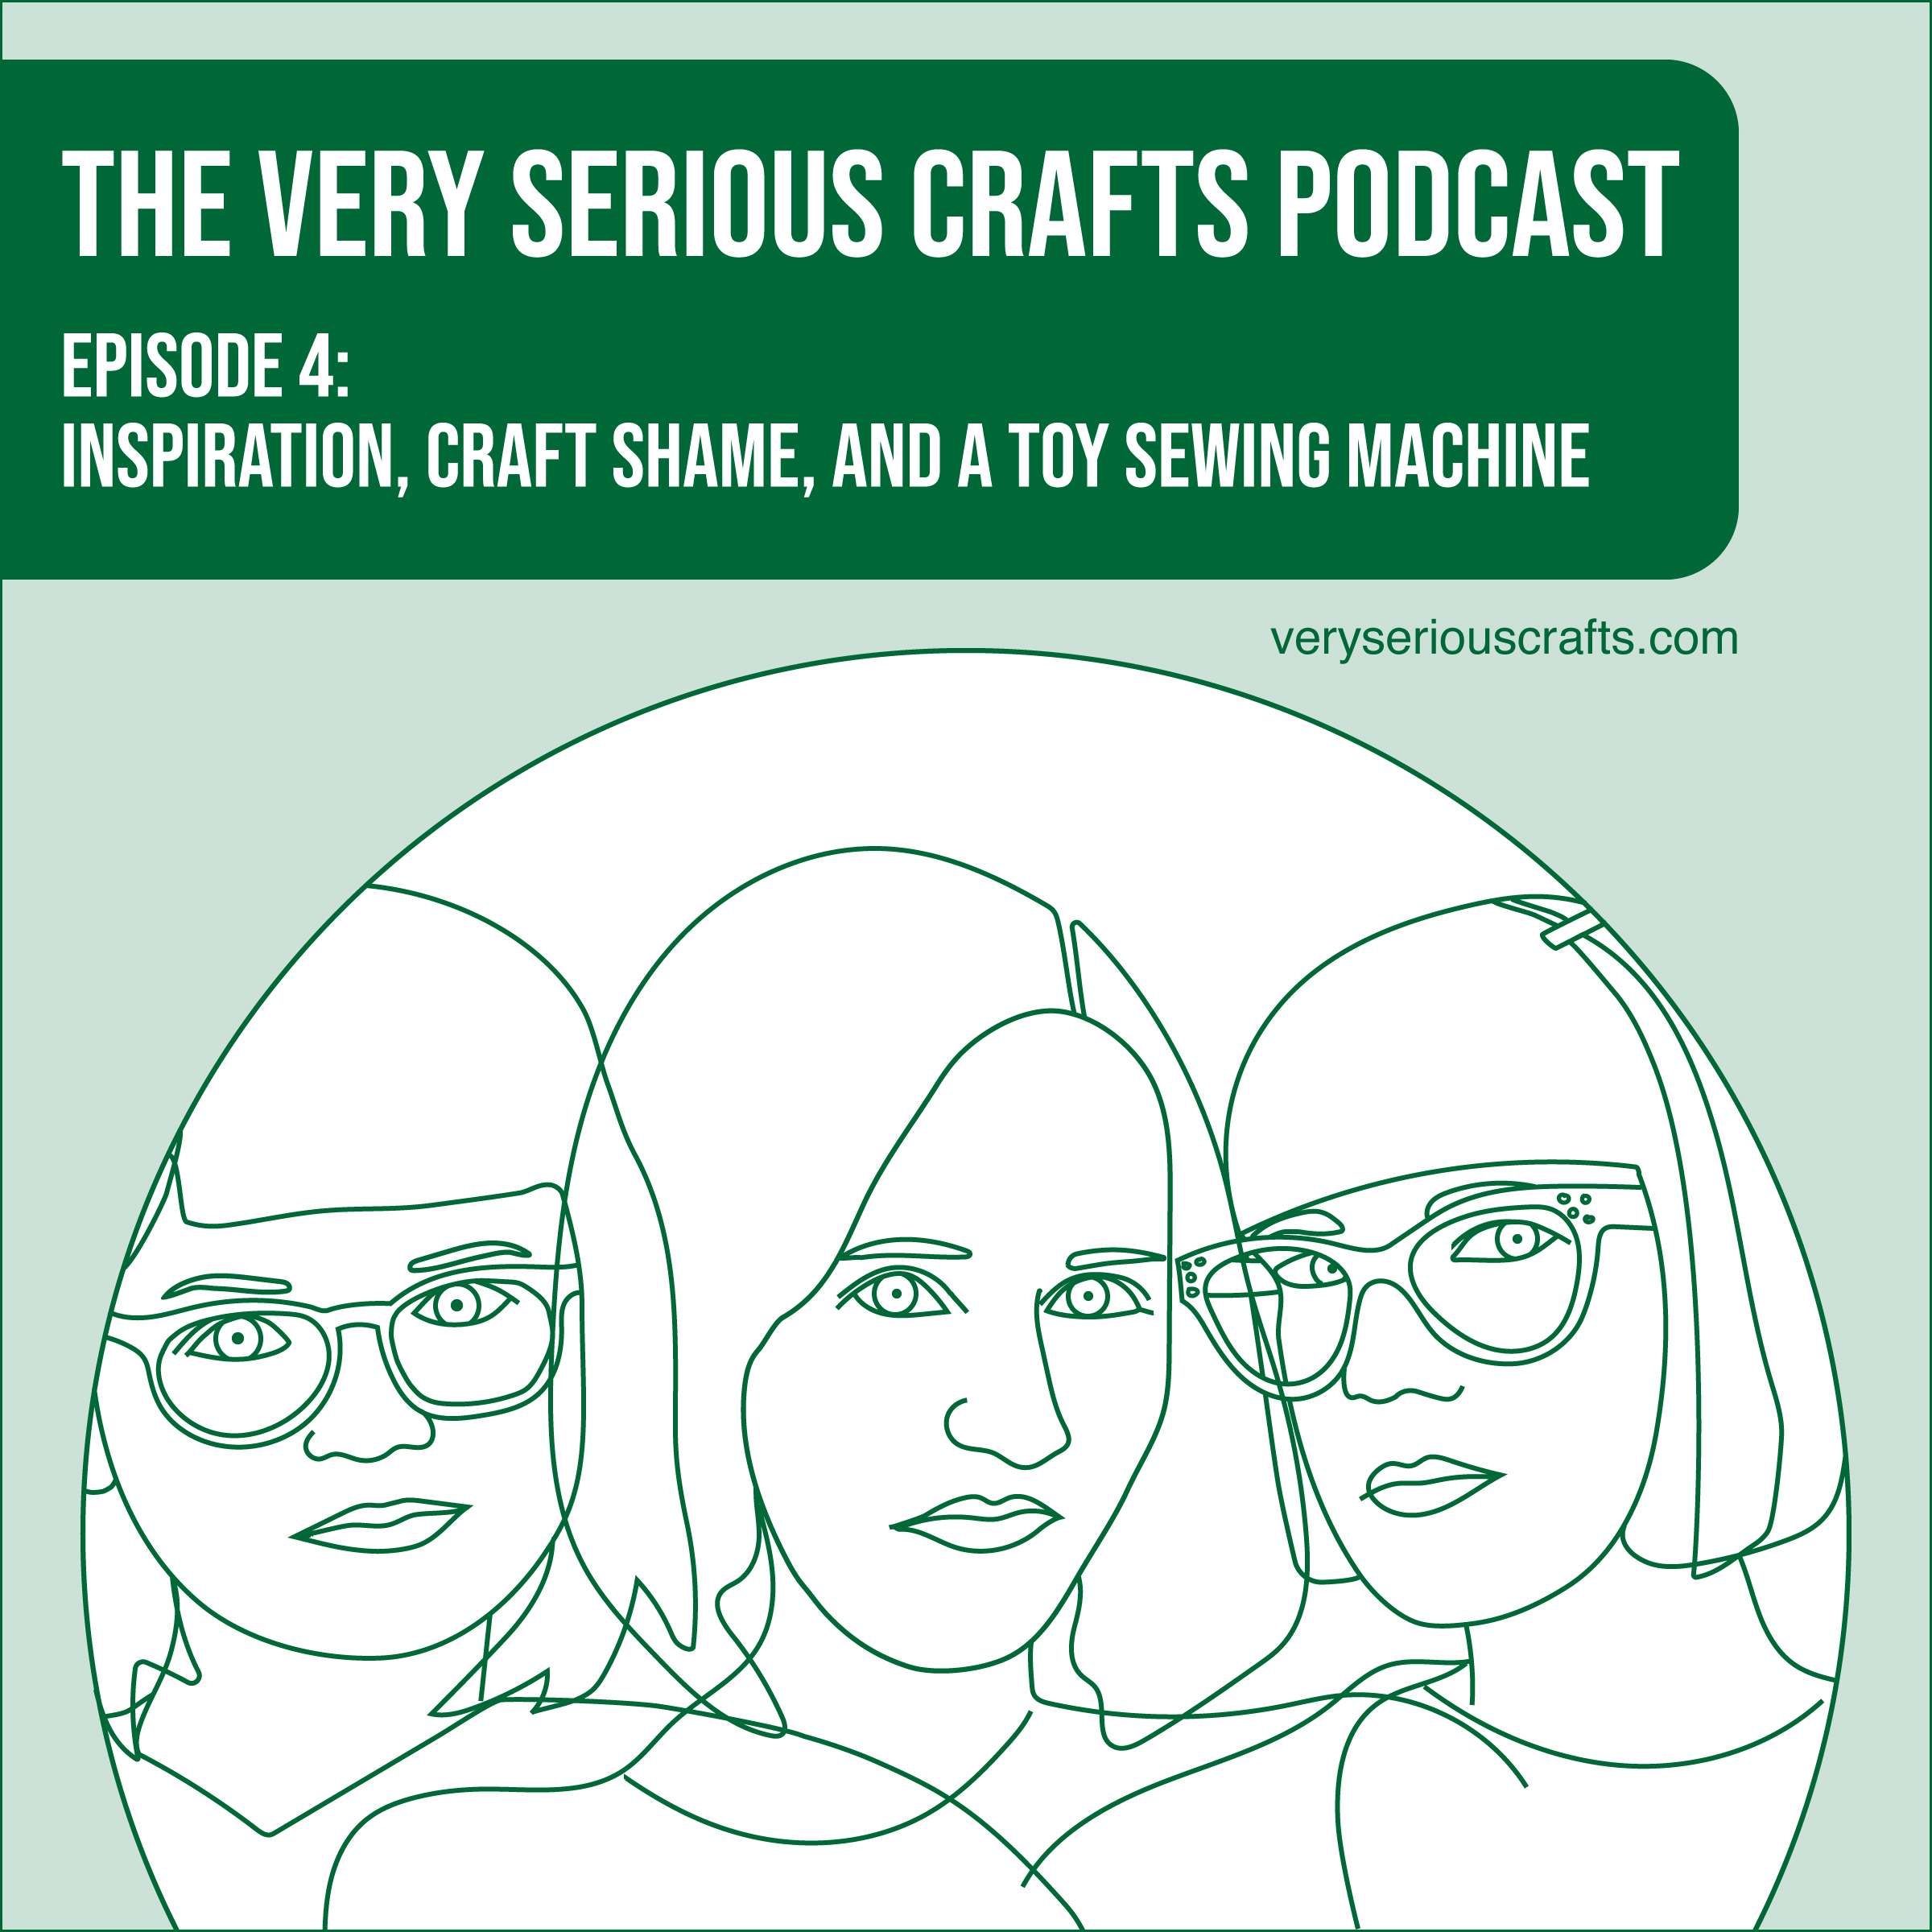 S1E04: Inspiration, Craft Shame, and a Toy Sewing Machine